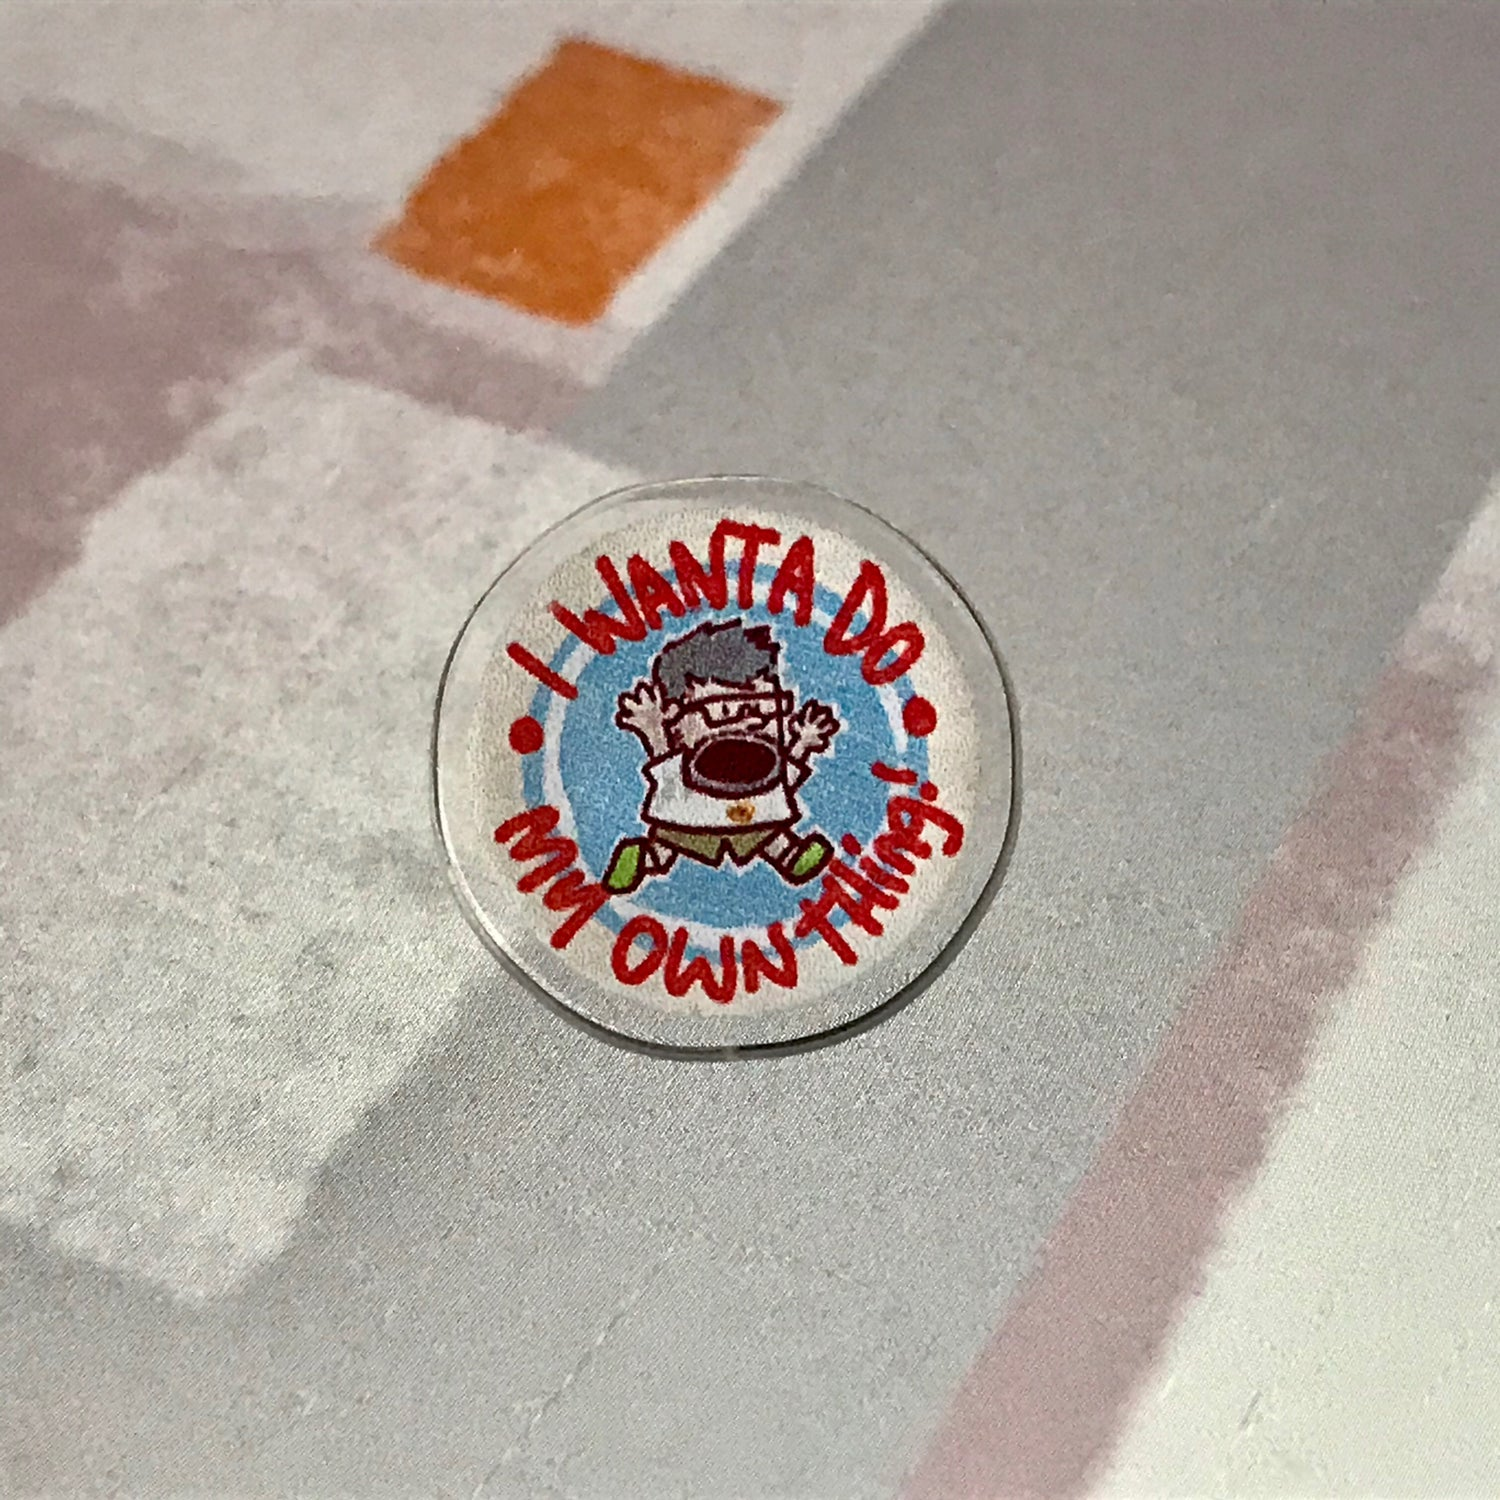 Image of I wanta do my own thing acrylic pin